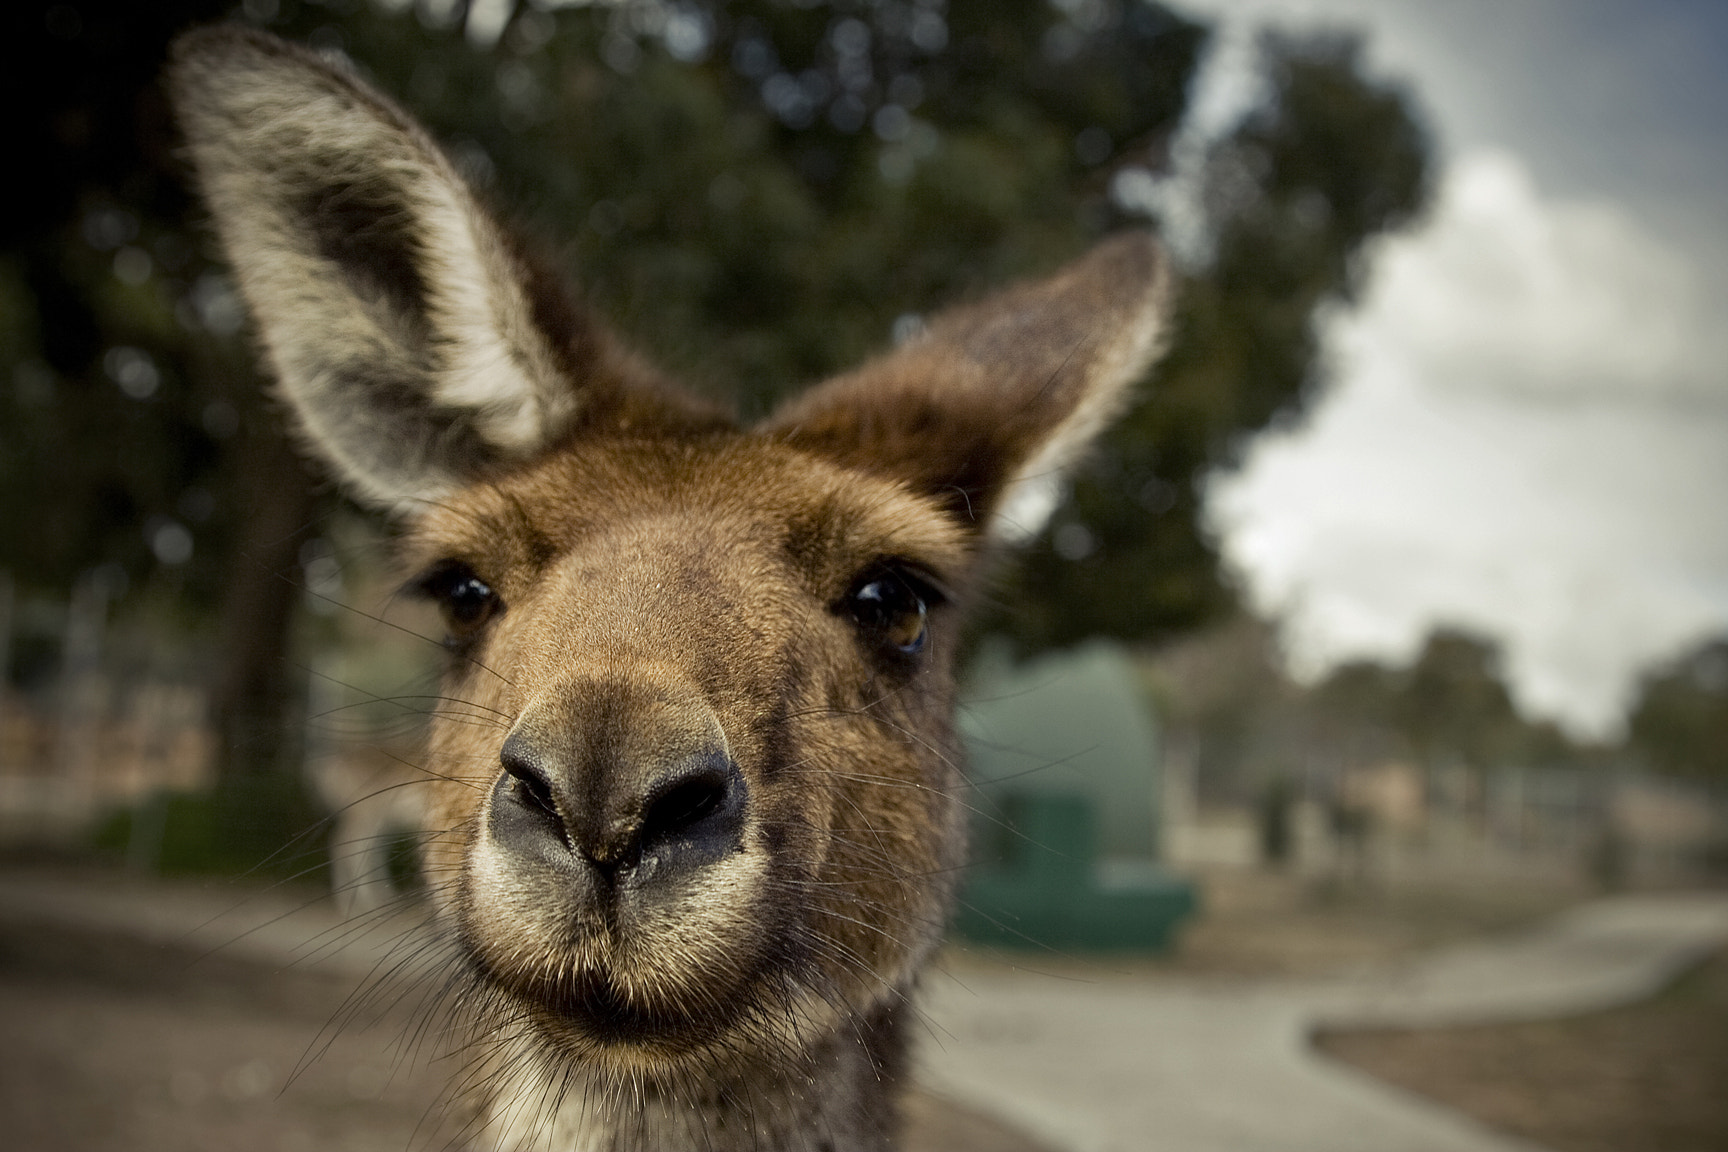 Photograph Roo the day by Ross Van der Watt on 500px